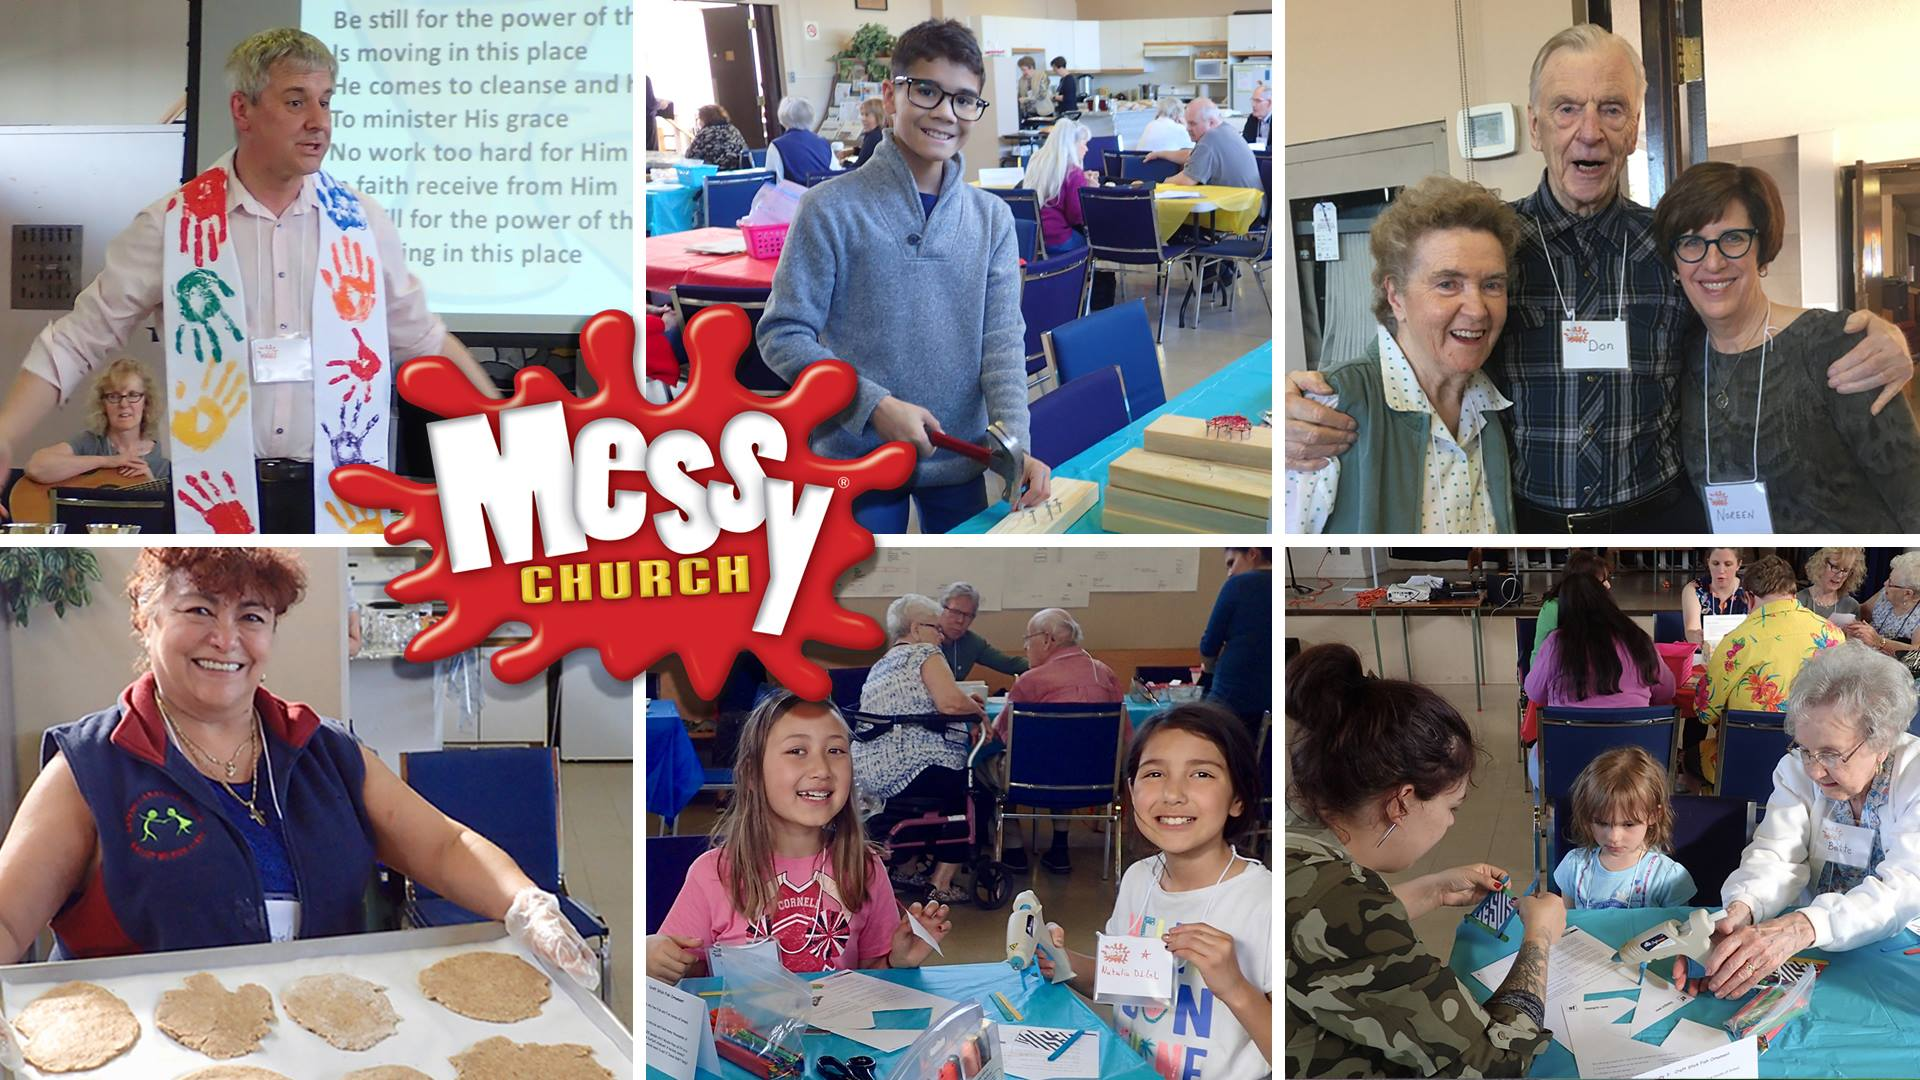 Our next Messy Church is this Saturday at 4pm! YAY : )